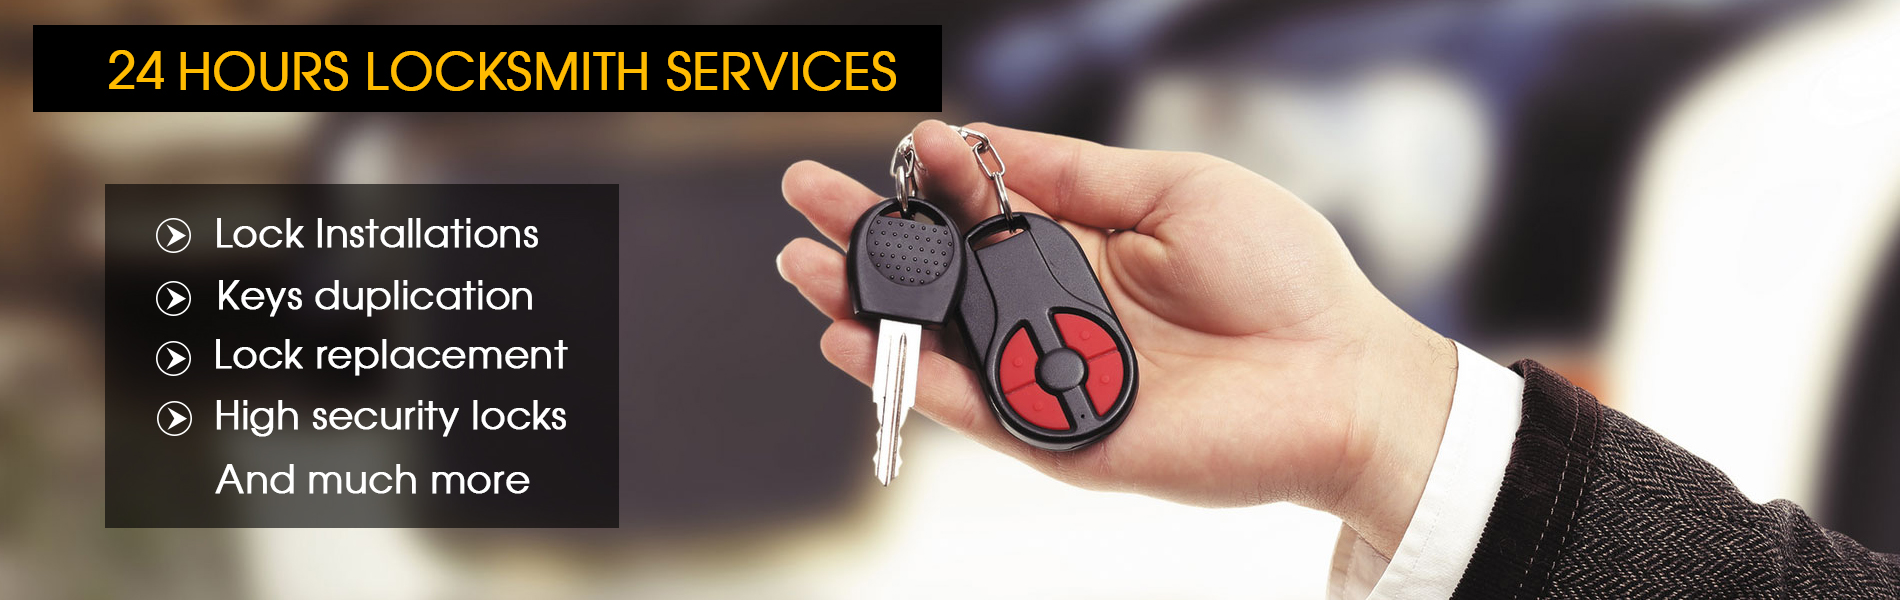 Exclusive Locksmith Service Holbrook, MA 781-298-3438